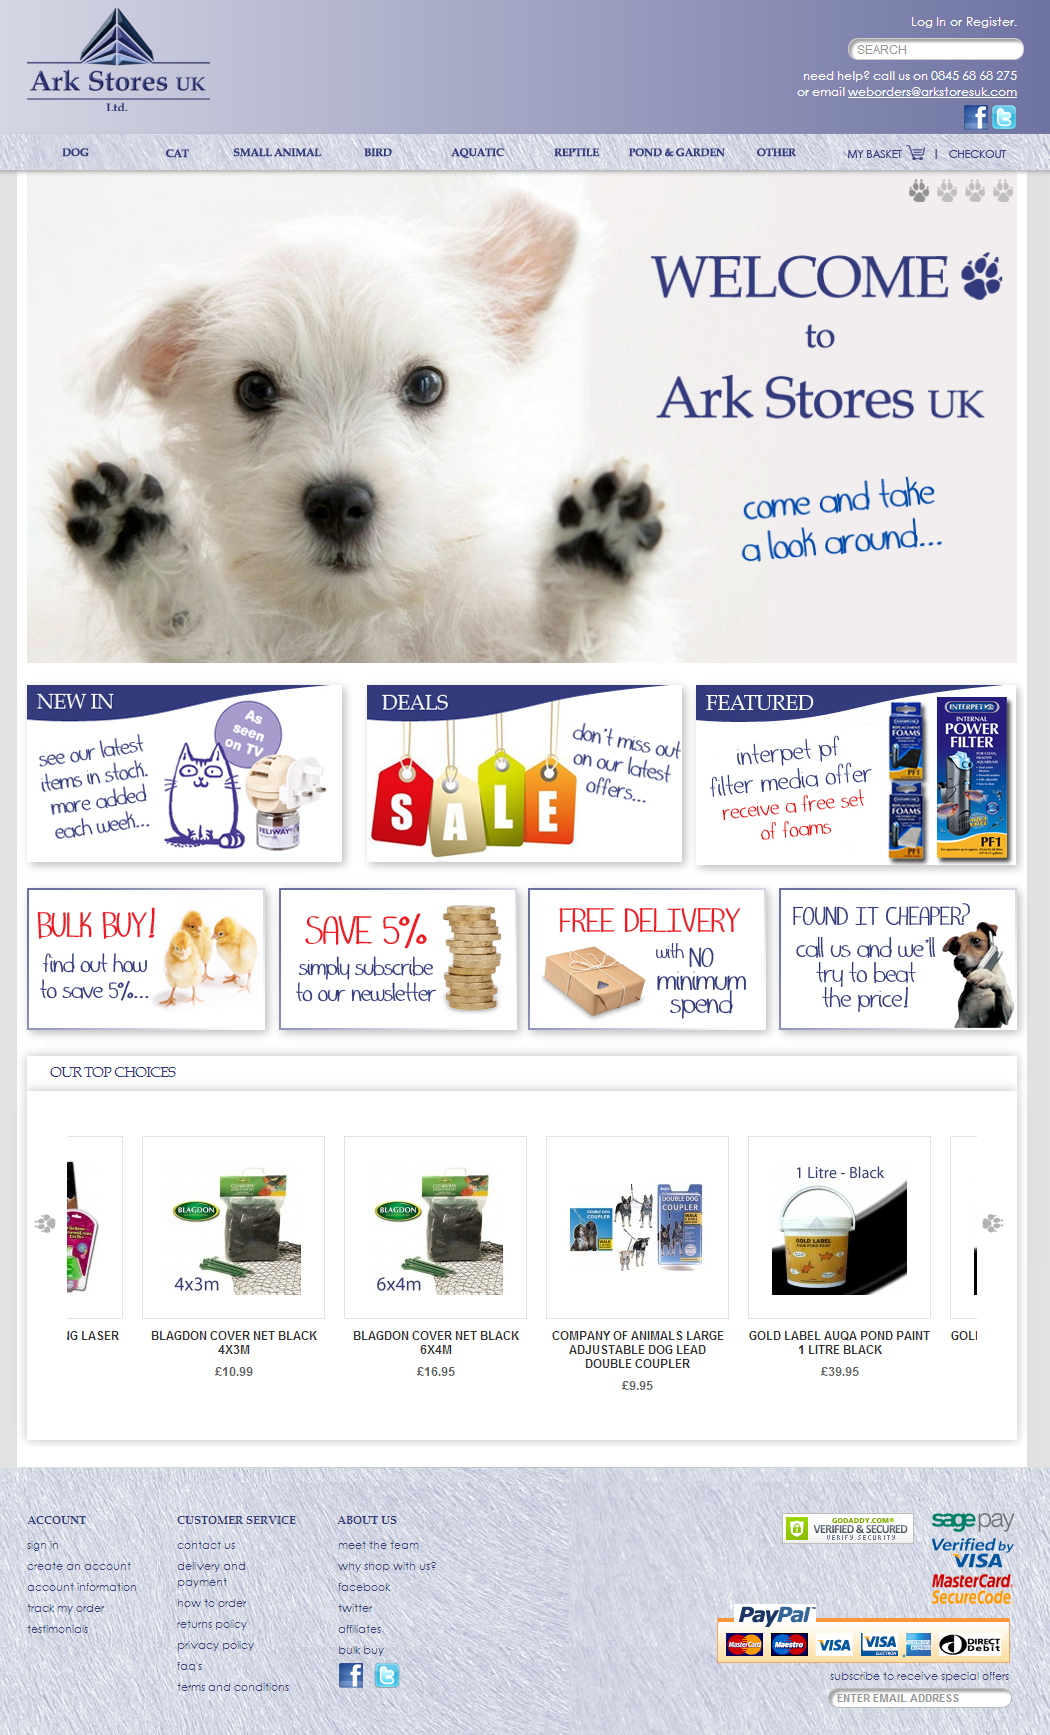 Ark Stores UK   Home page